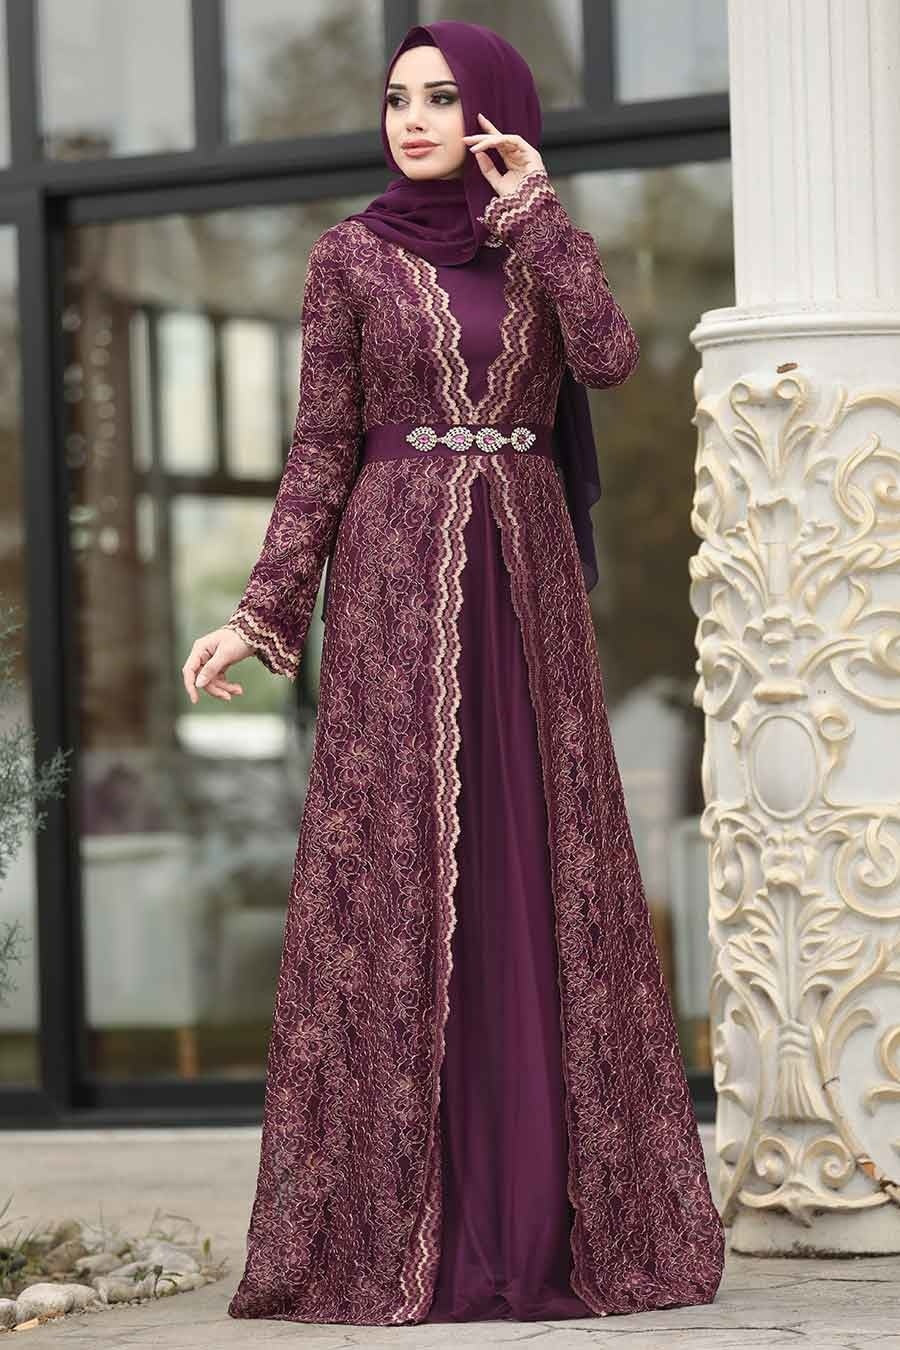 Women's Lace Damson Evening Dress